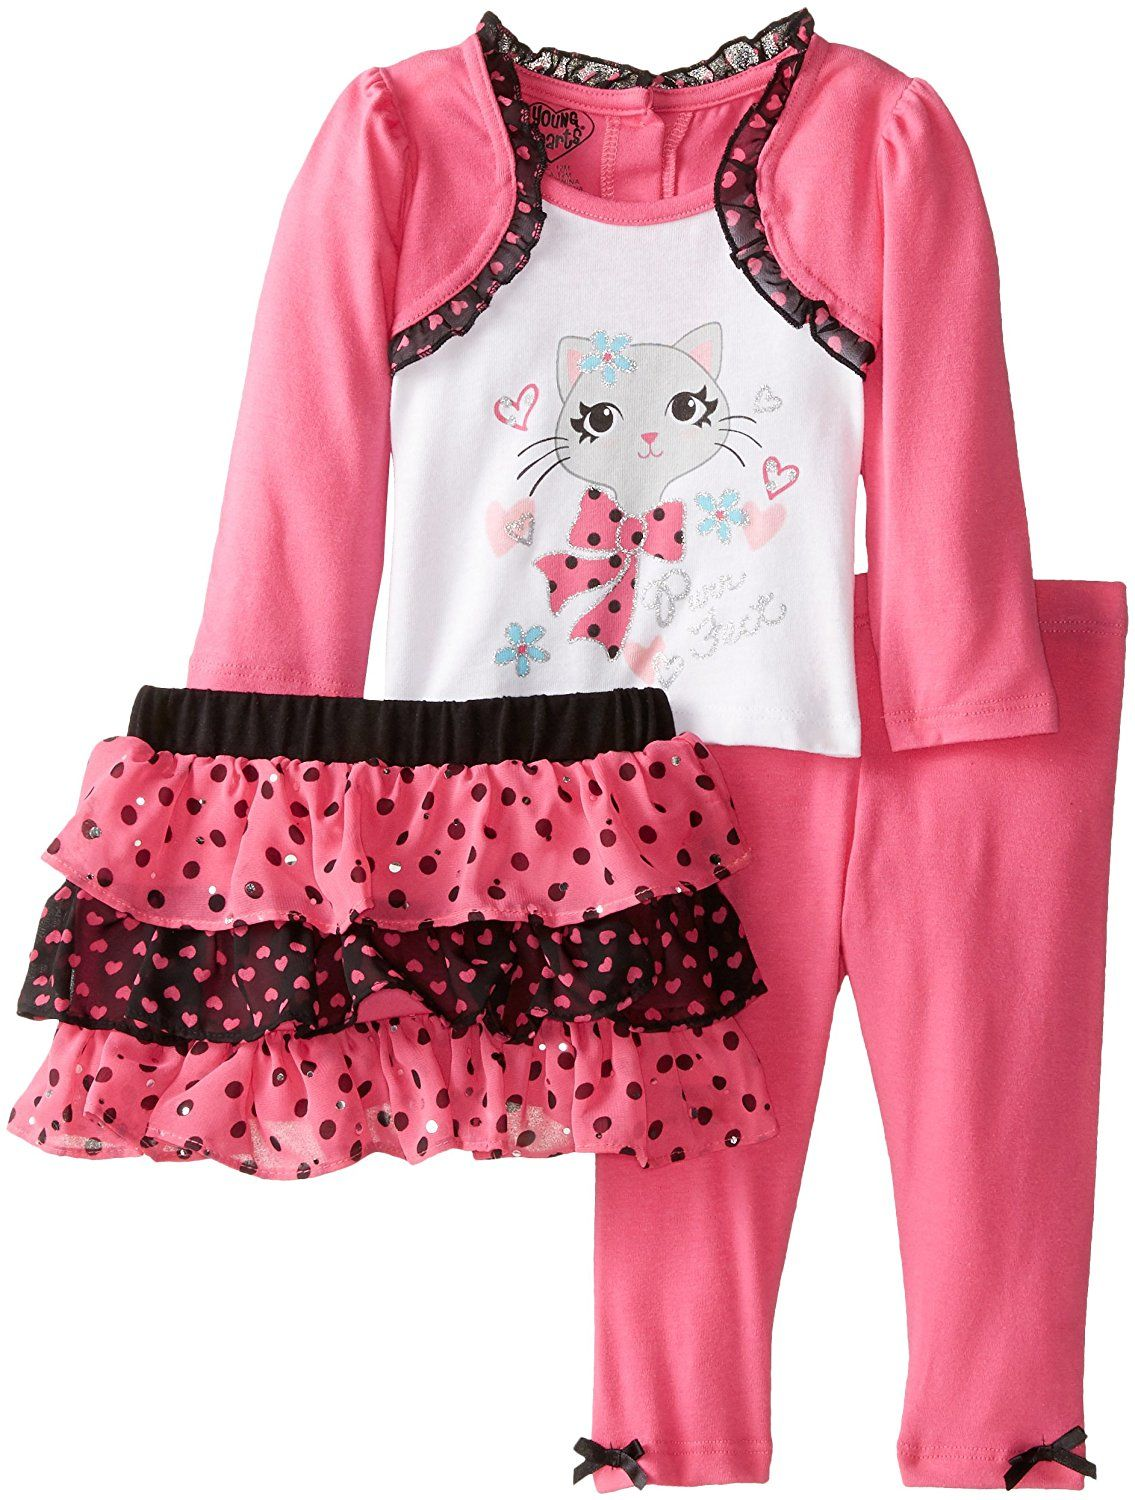 256145b57f15 Young Hearts Baby Girls' 3 Piece Cat Design Shirt Skirt and Legging -- Wow!  I love this. Check it out now! : Baby clothes